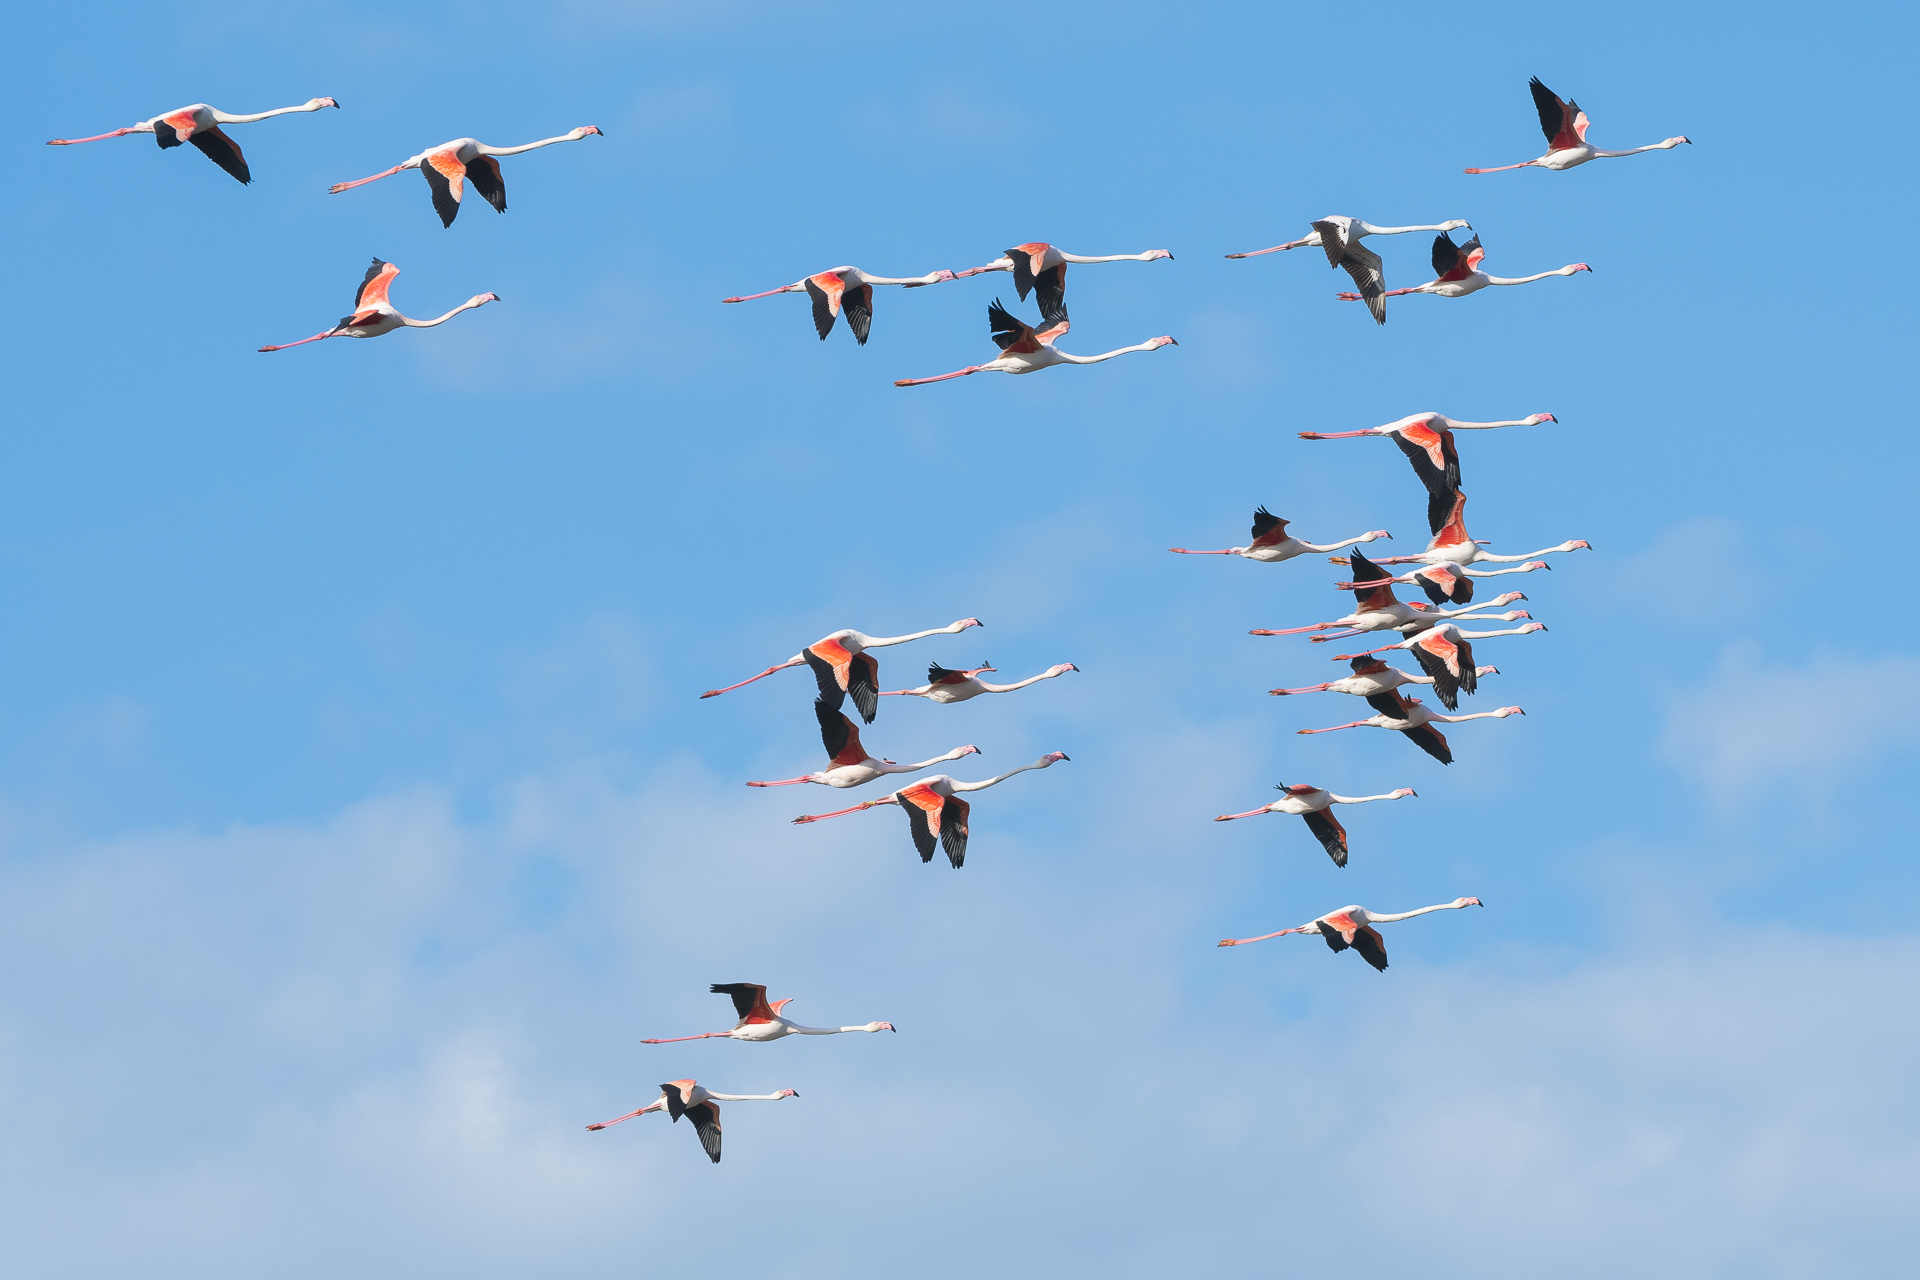 Flock of greater flamingos. Parc naturel régional de Camargue, France.